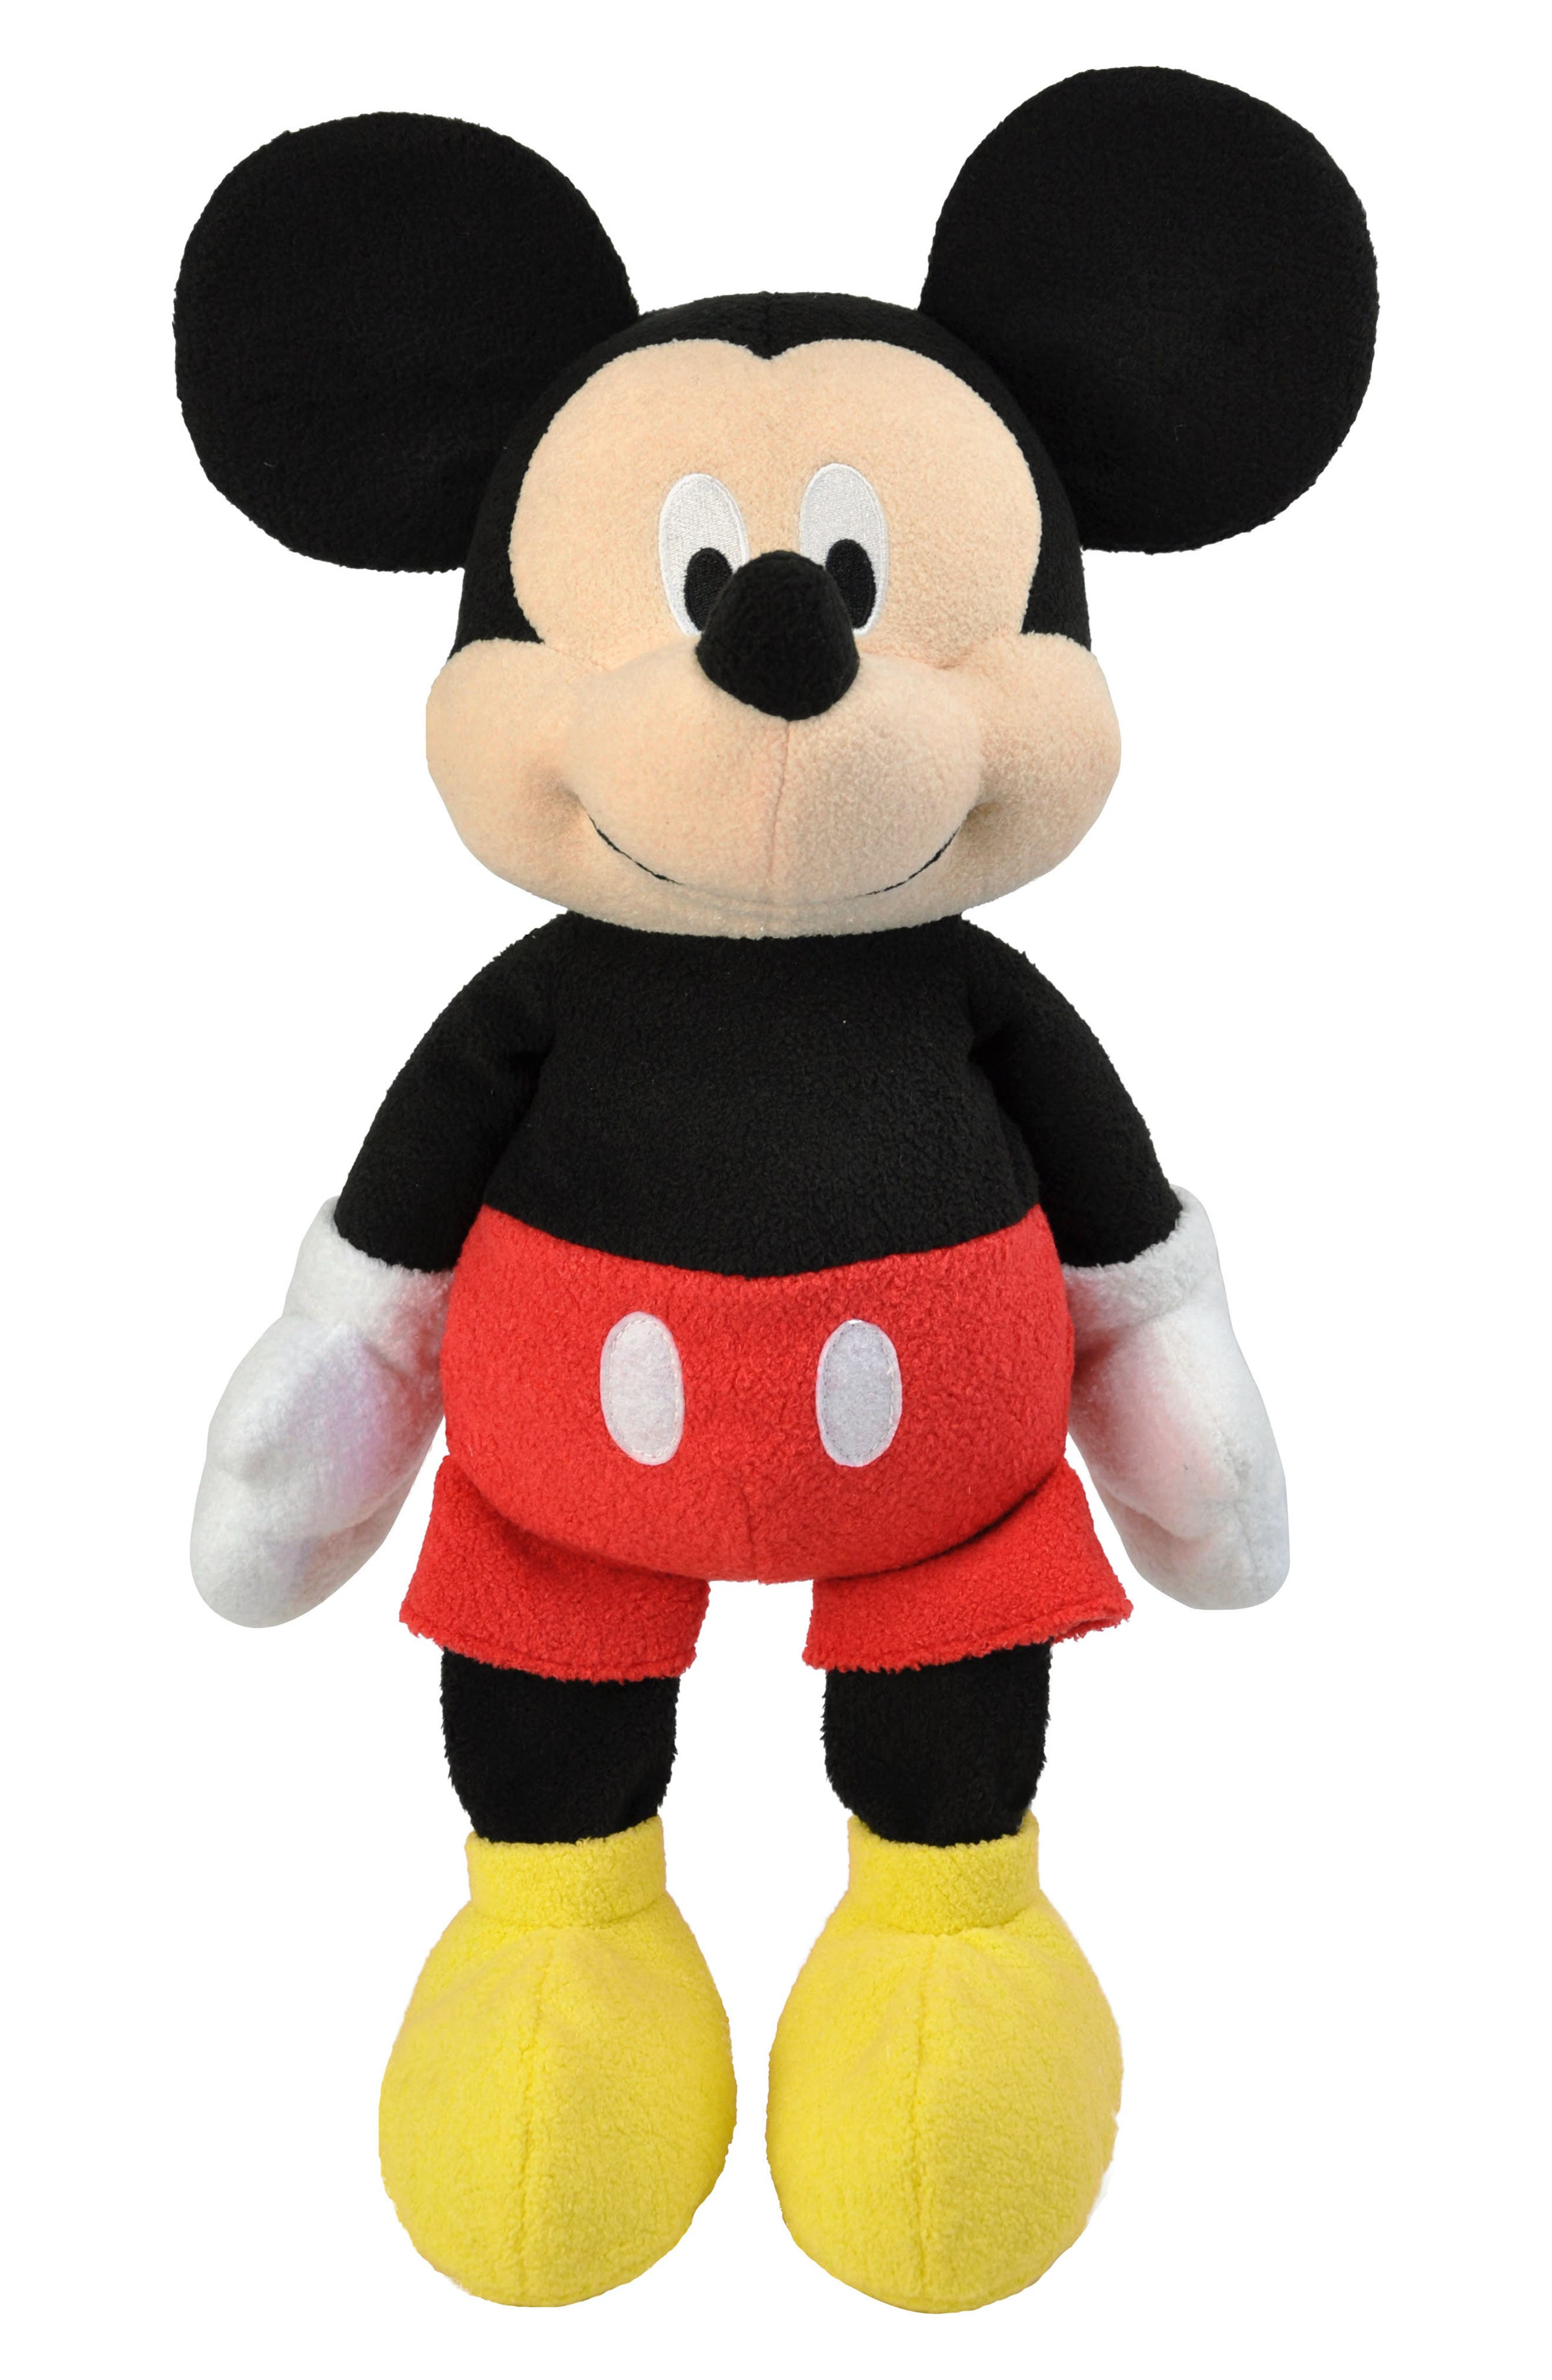 Mickey Mouse Floppy Plush Toy, Main, color, MULTICOLOR